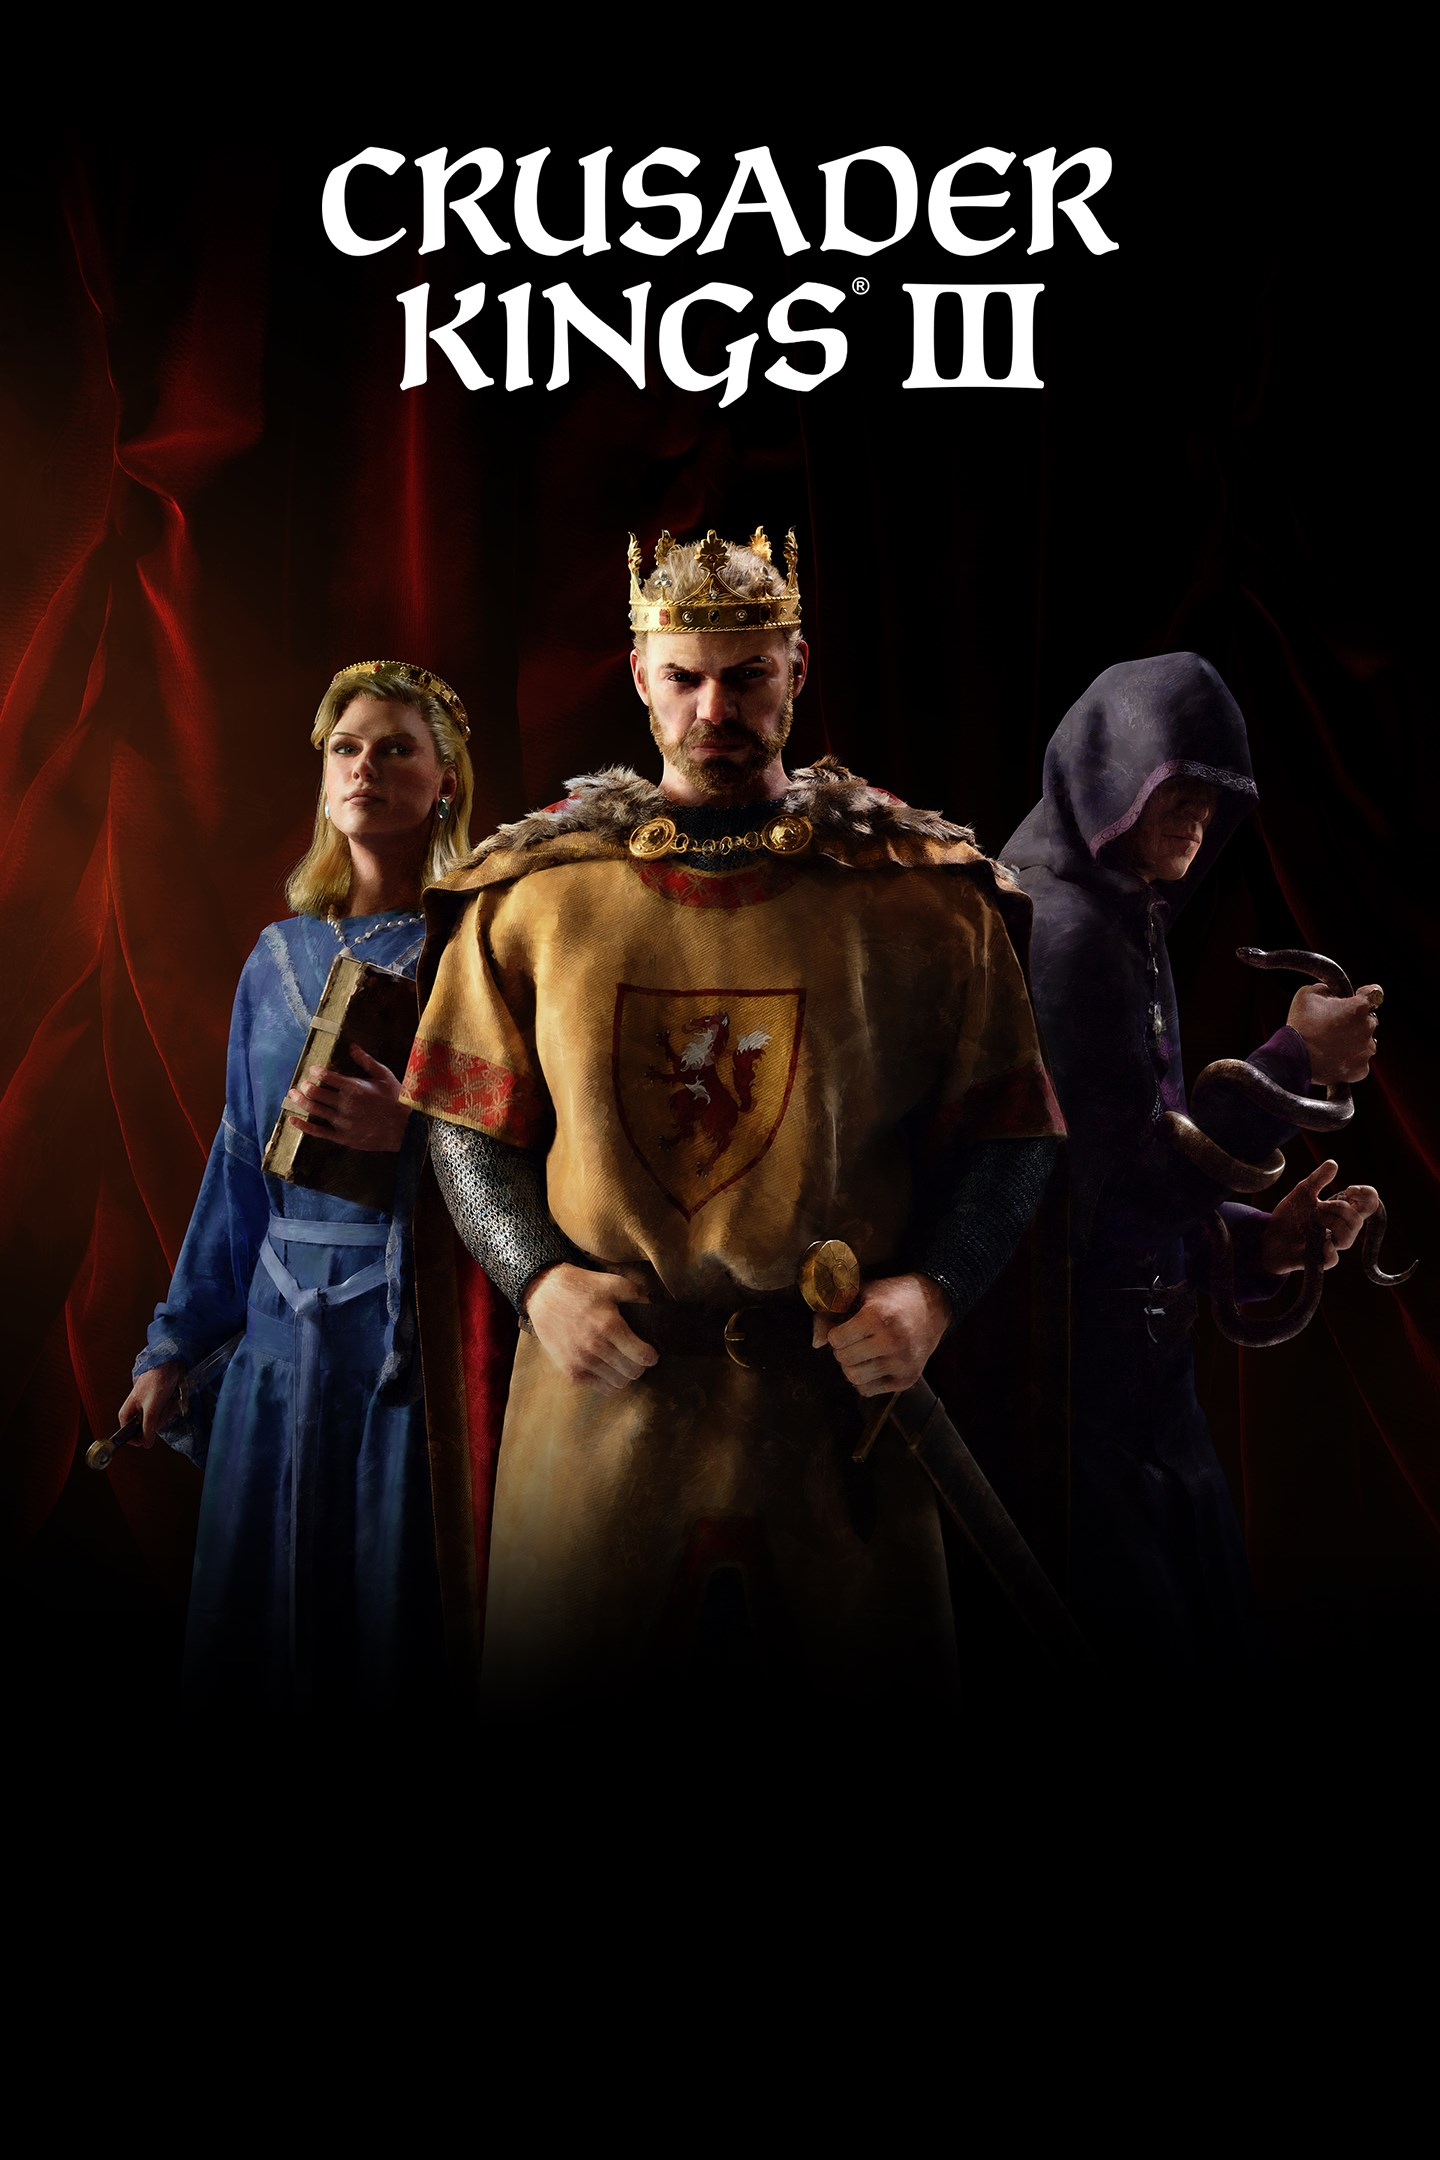 Fan-Favorite Feature Returns to Crusader Kings III in Free Update